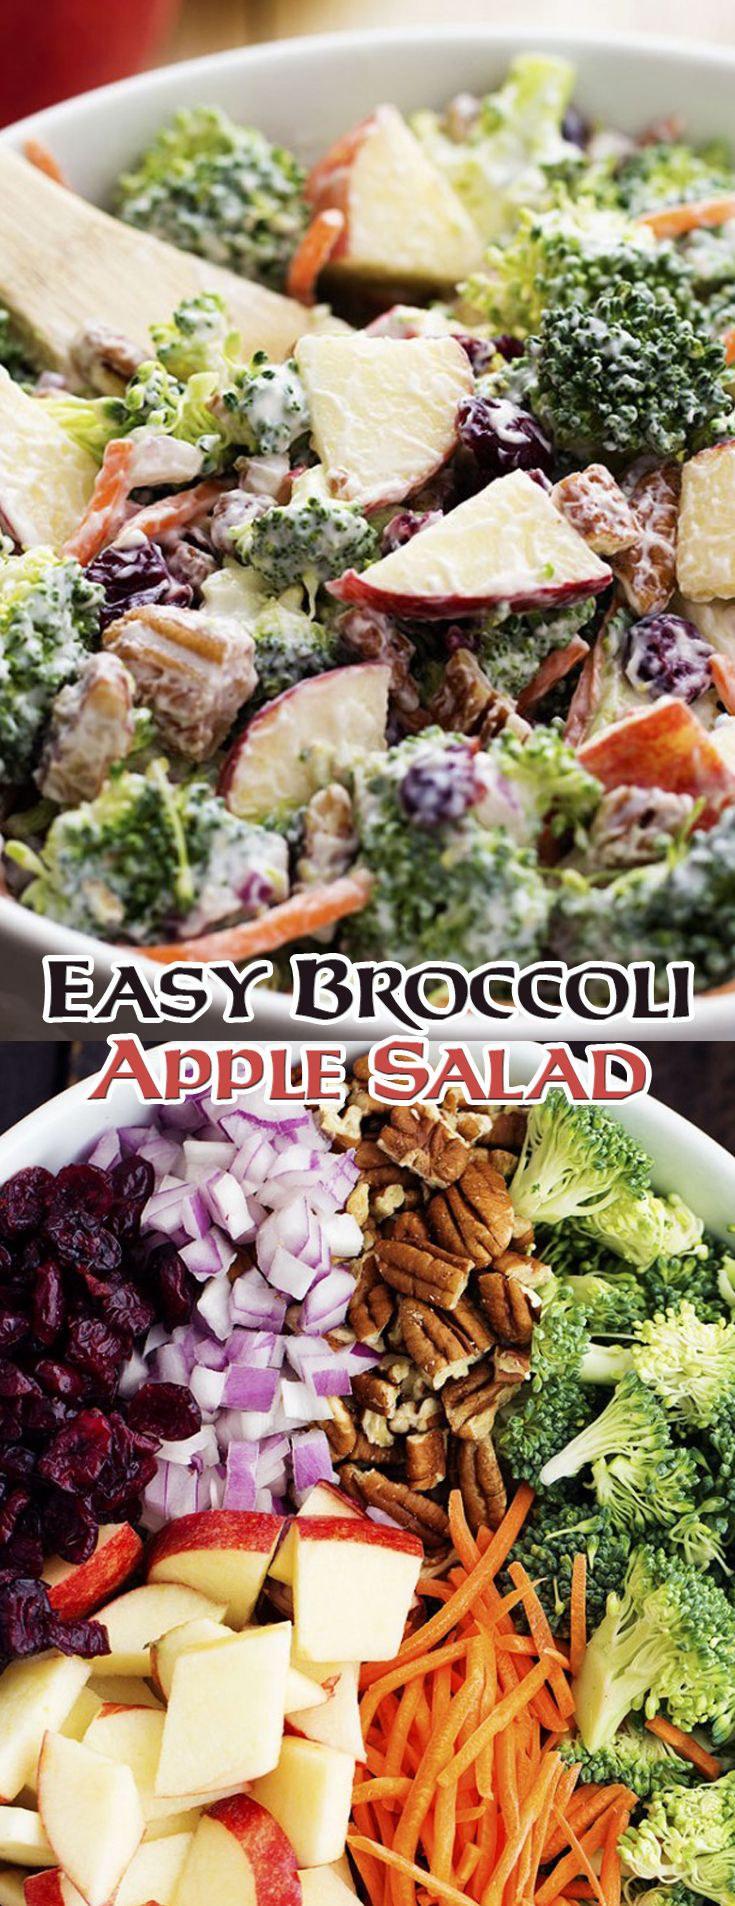 Easy Broccoli Apple Salad. This was the best broccoli salad I ever made! #win